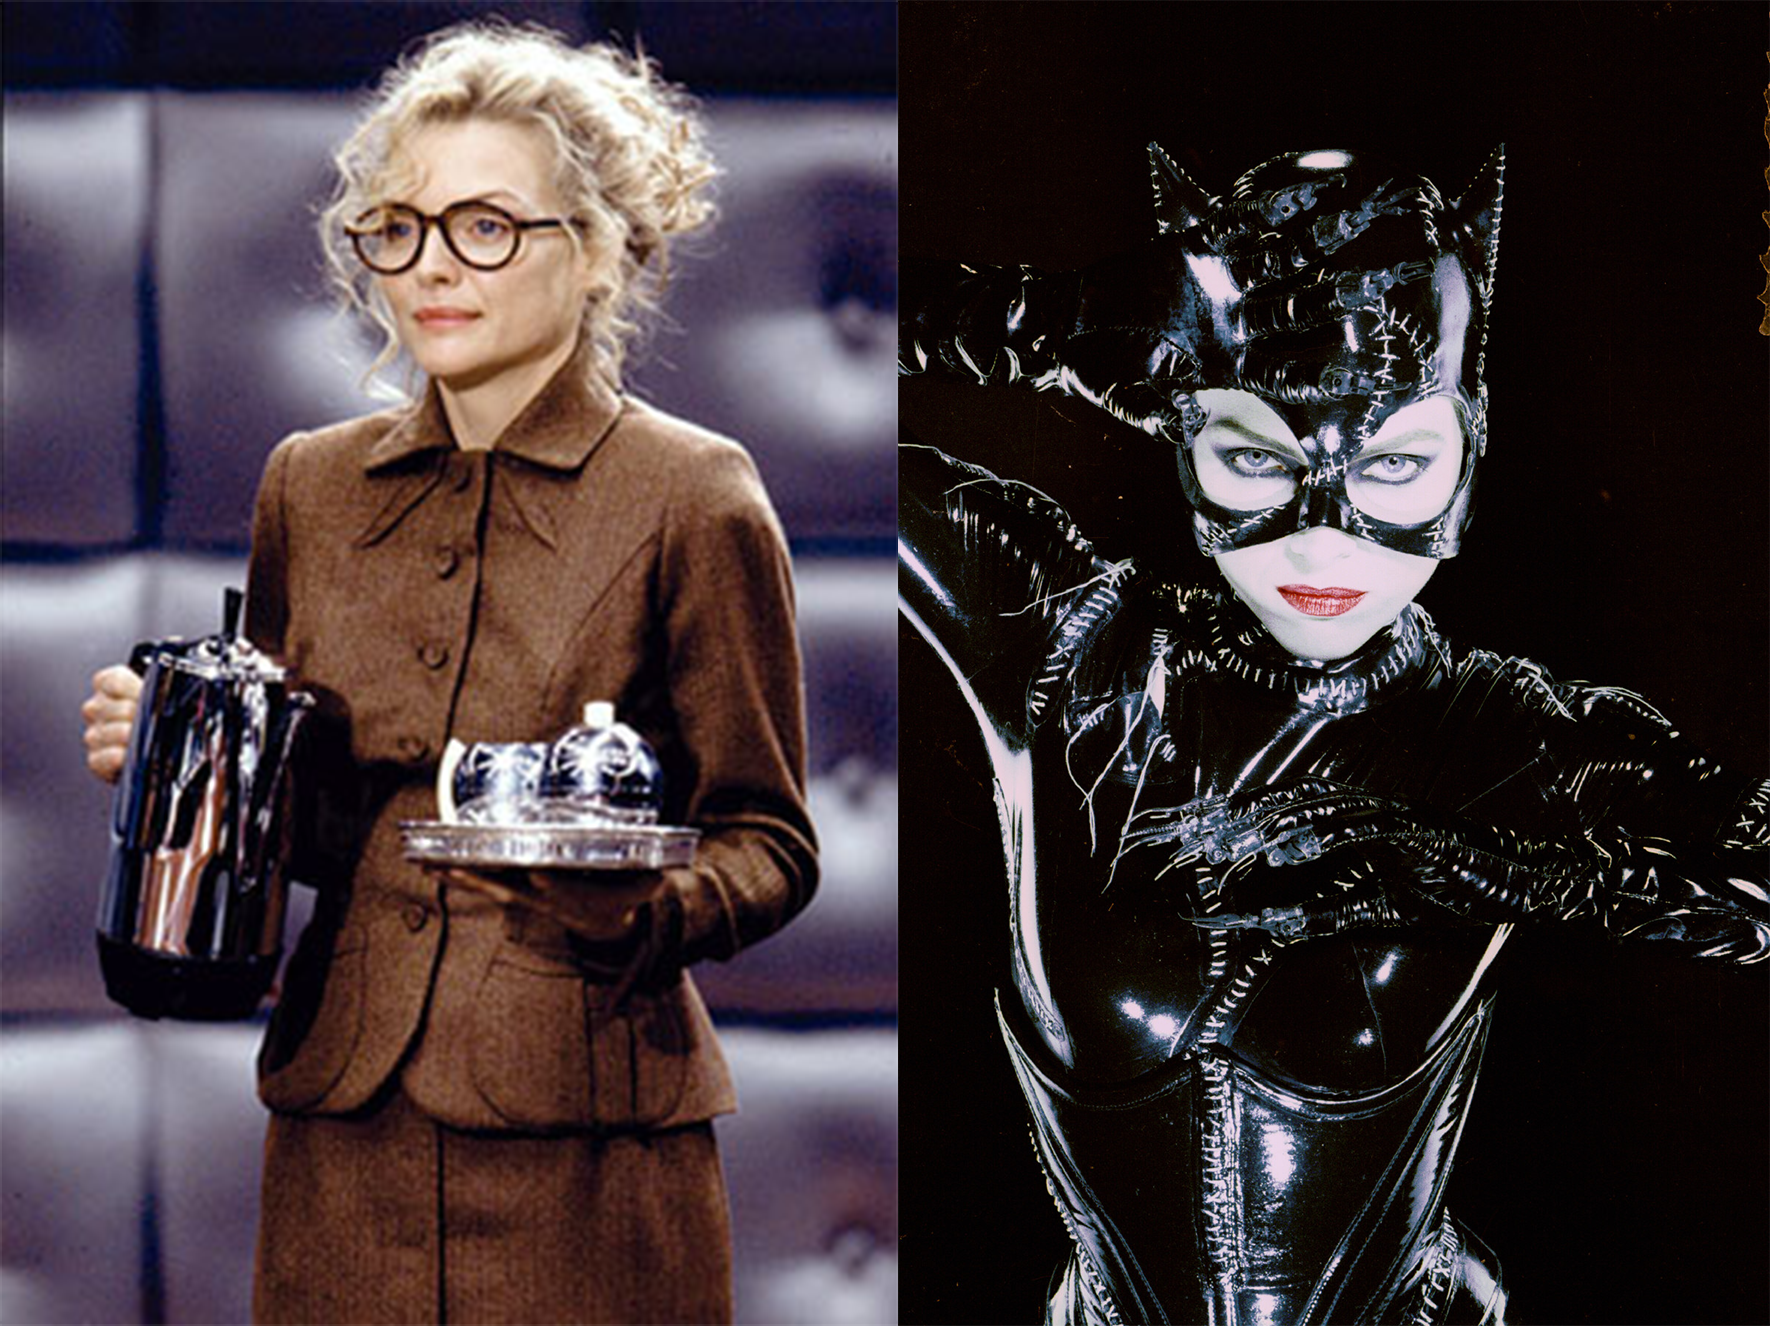 A half an hour of screen time separates these two looks for the same woman. Michelle Pfeiffer's transformation from Selina Kyle into Catwoman is terrifyingly effective.